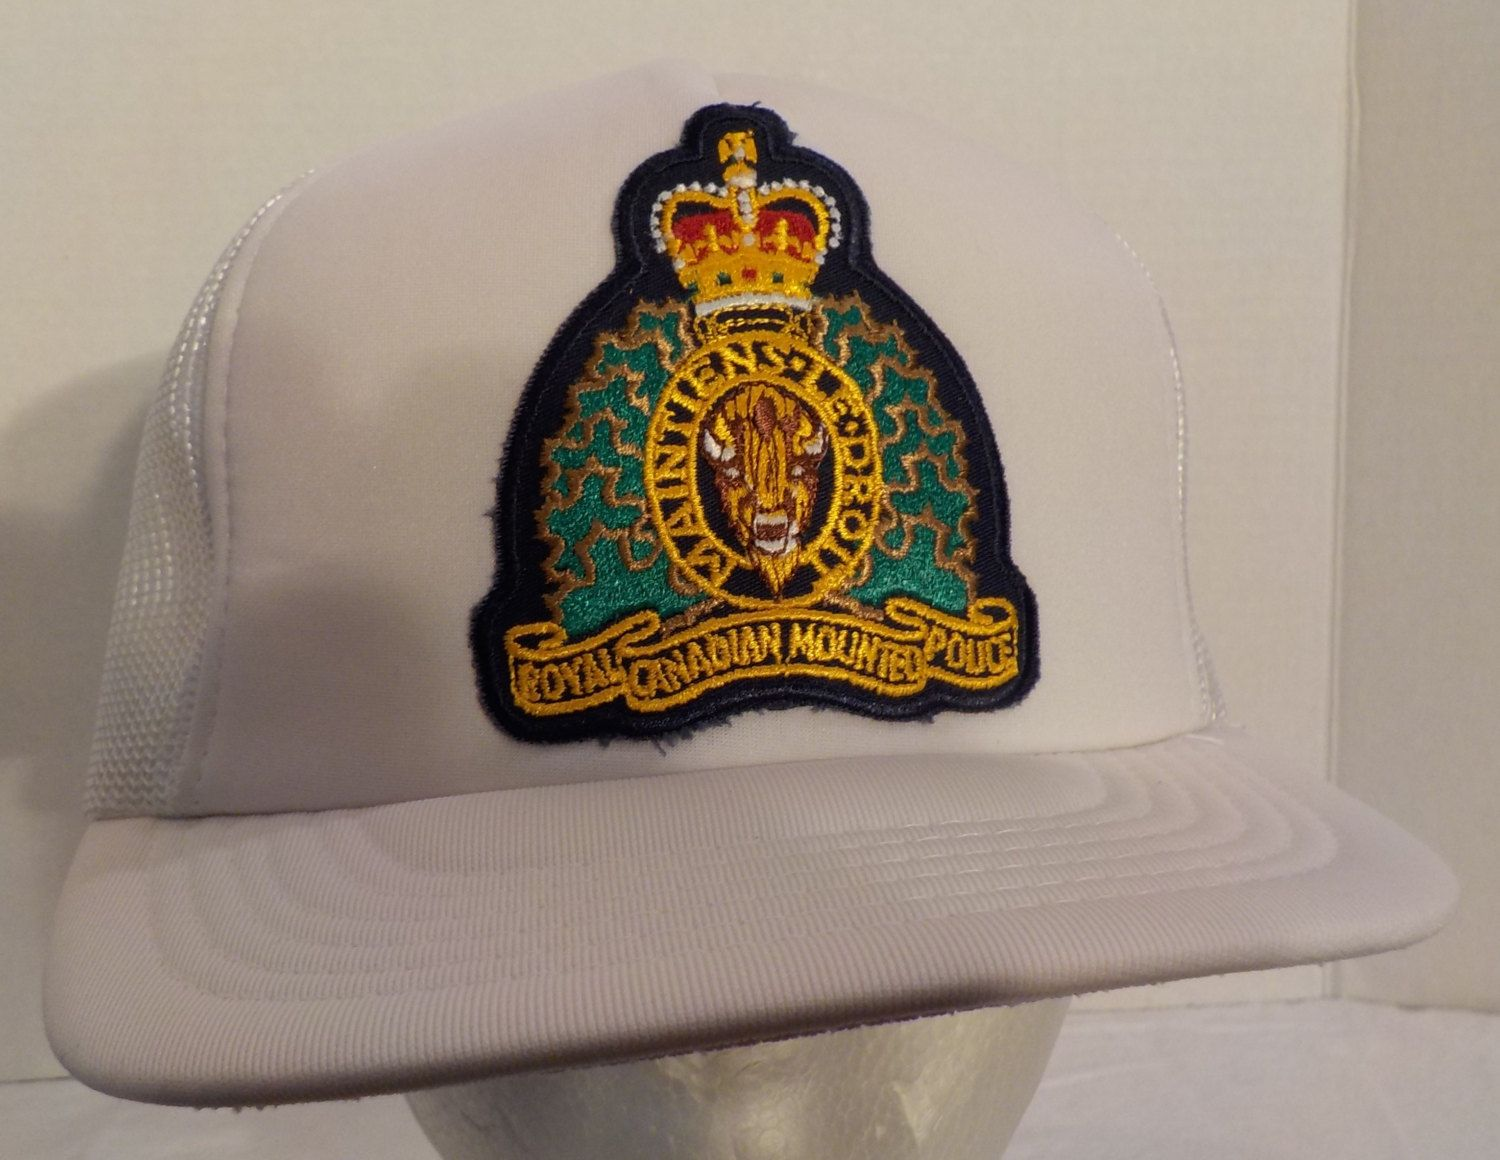 Vintage Snapback RCMP Royal Canadian Mounted Police Truckers Baseball Hat  Cap by… 91a04918db8